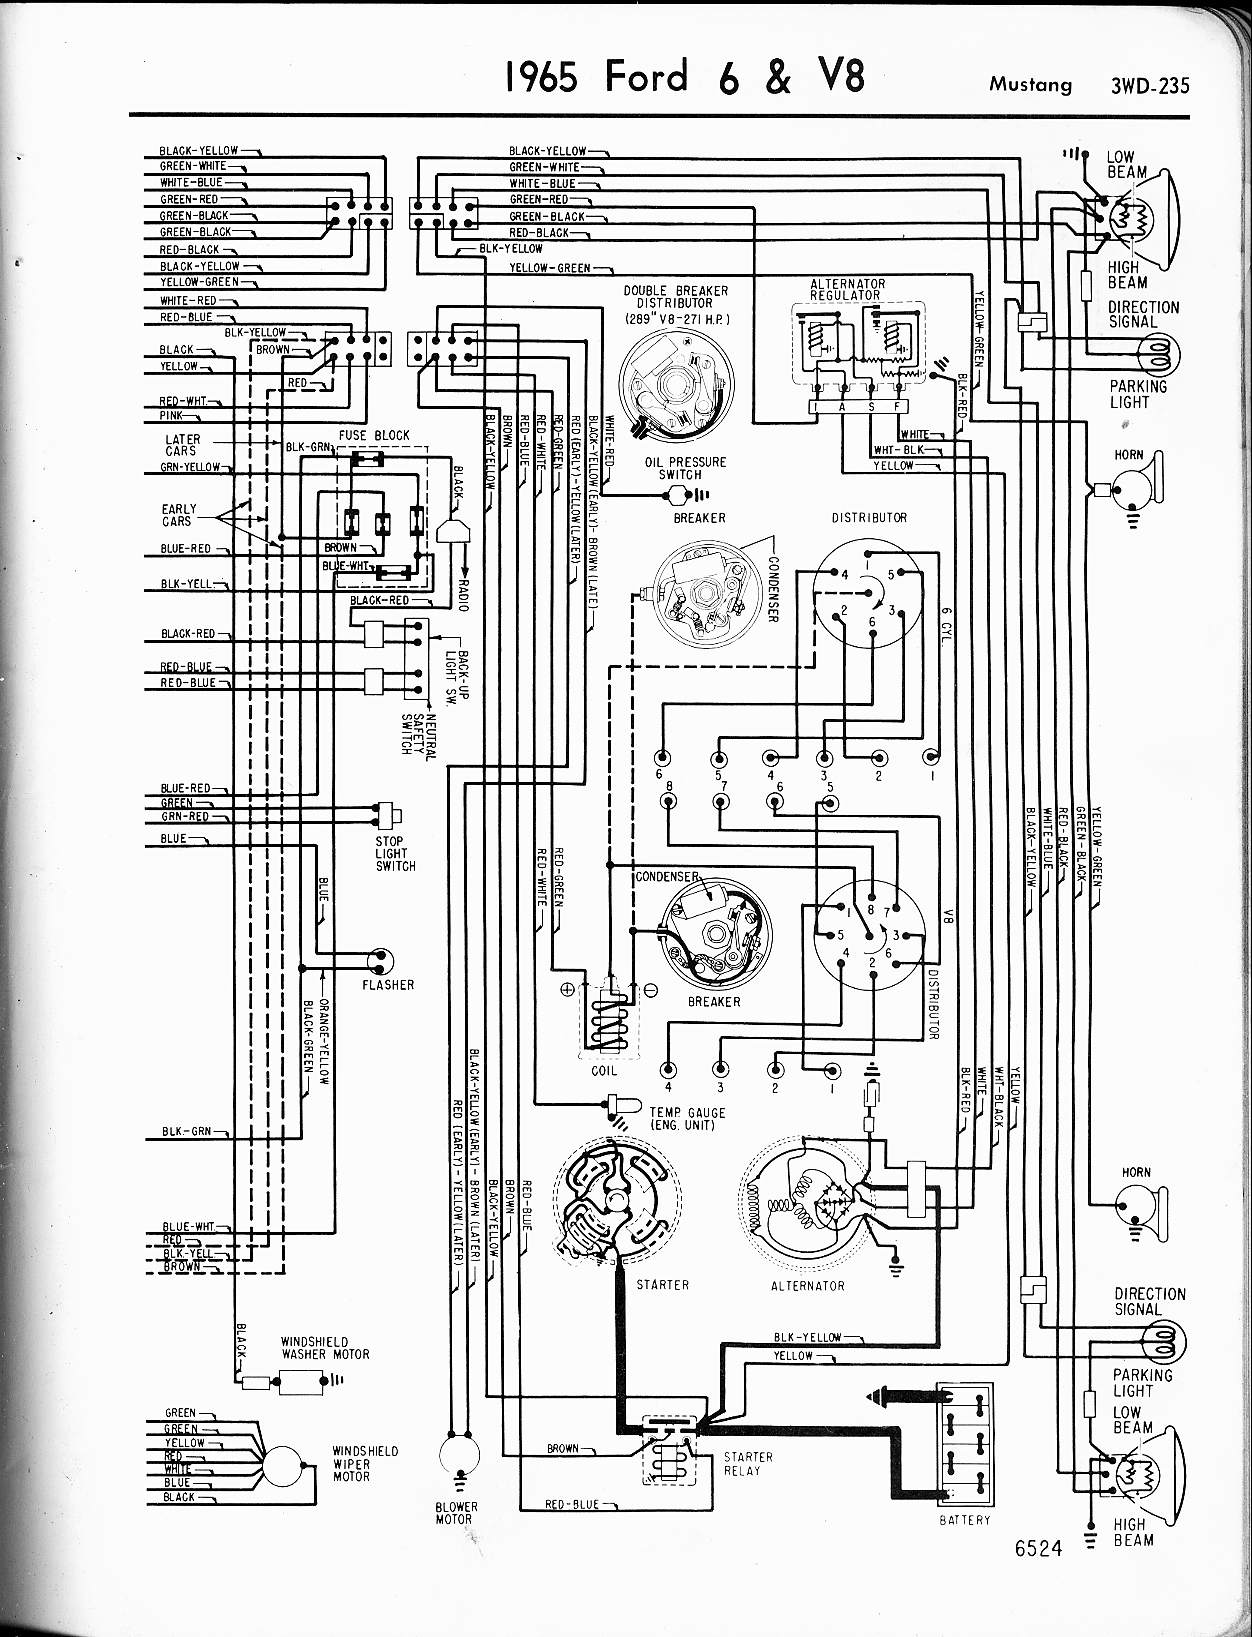 MWire5765 235 mustang wiring harness diagram 2005 2009 mustang wiring harness 1965 ford mustang wiring diagrams at couponss.co